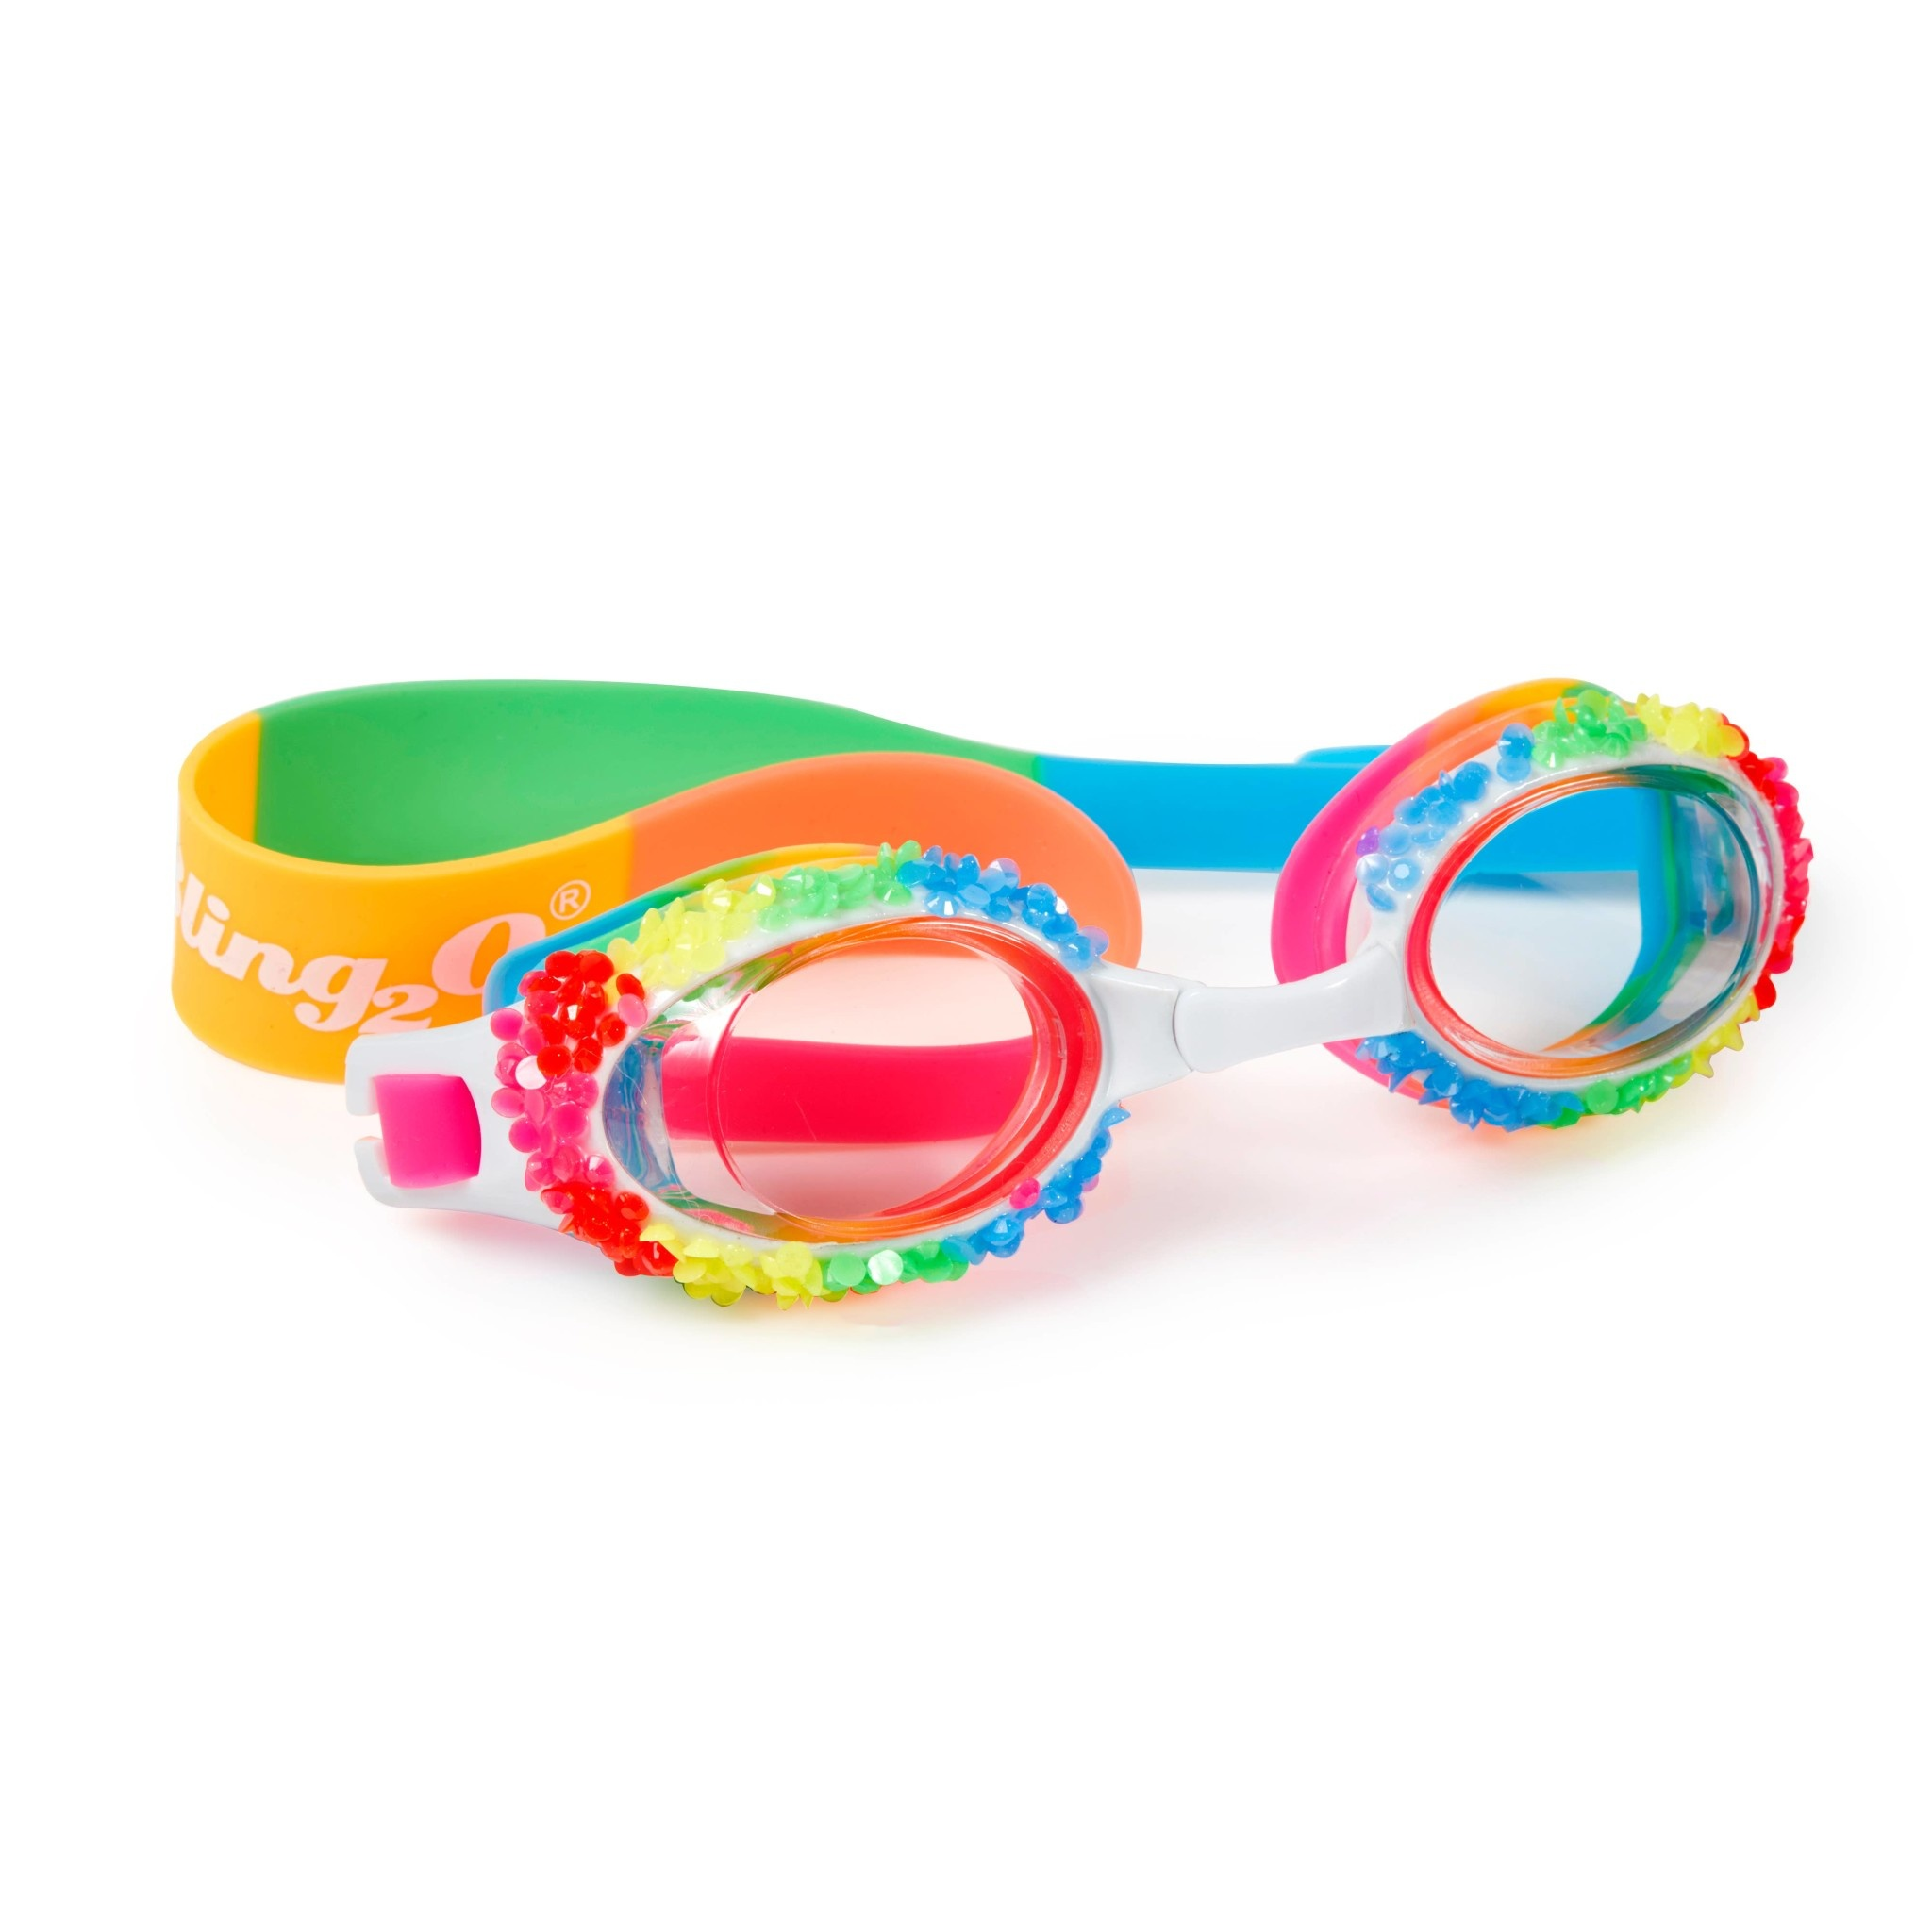 Bling2o Bling2o Shaved Ice Swim Goggles